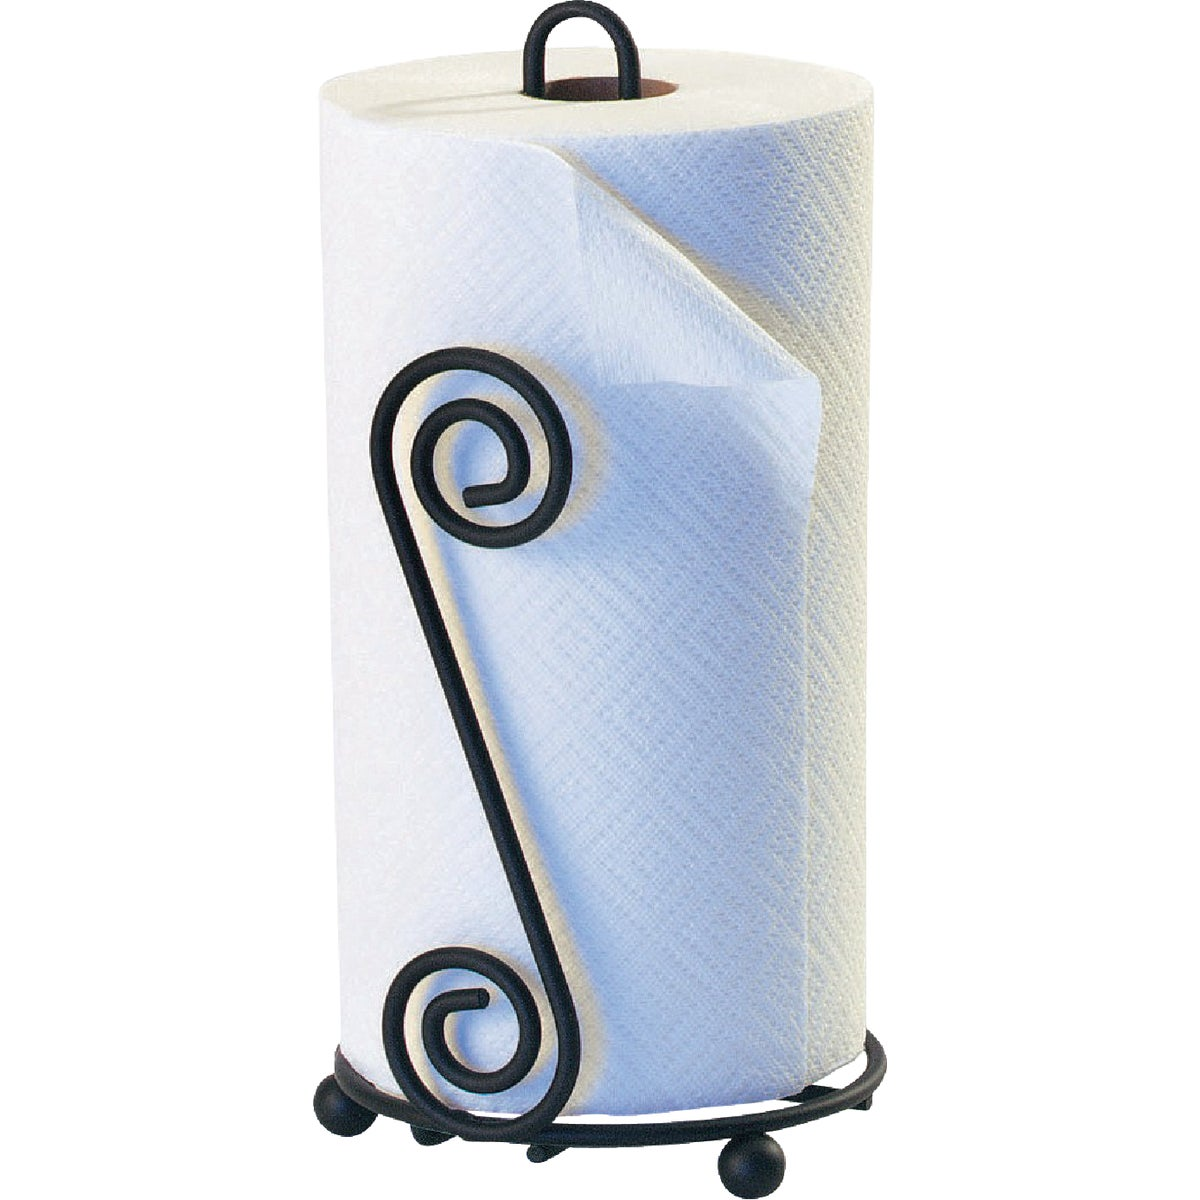 PAPER TOWEL HOLDER - 44410 by Spectrum Diversified